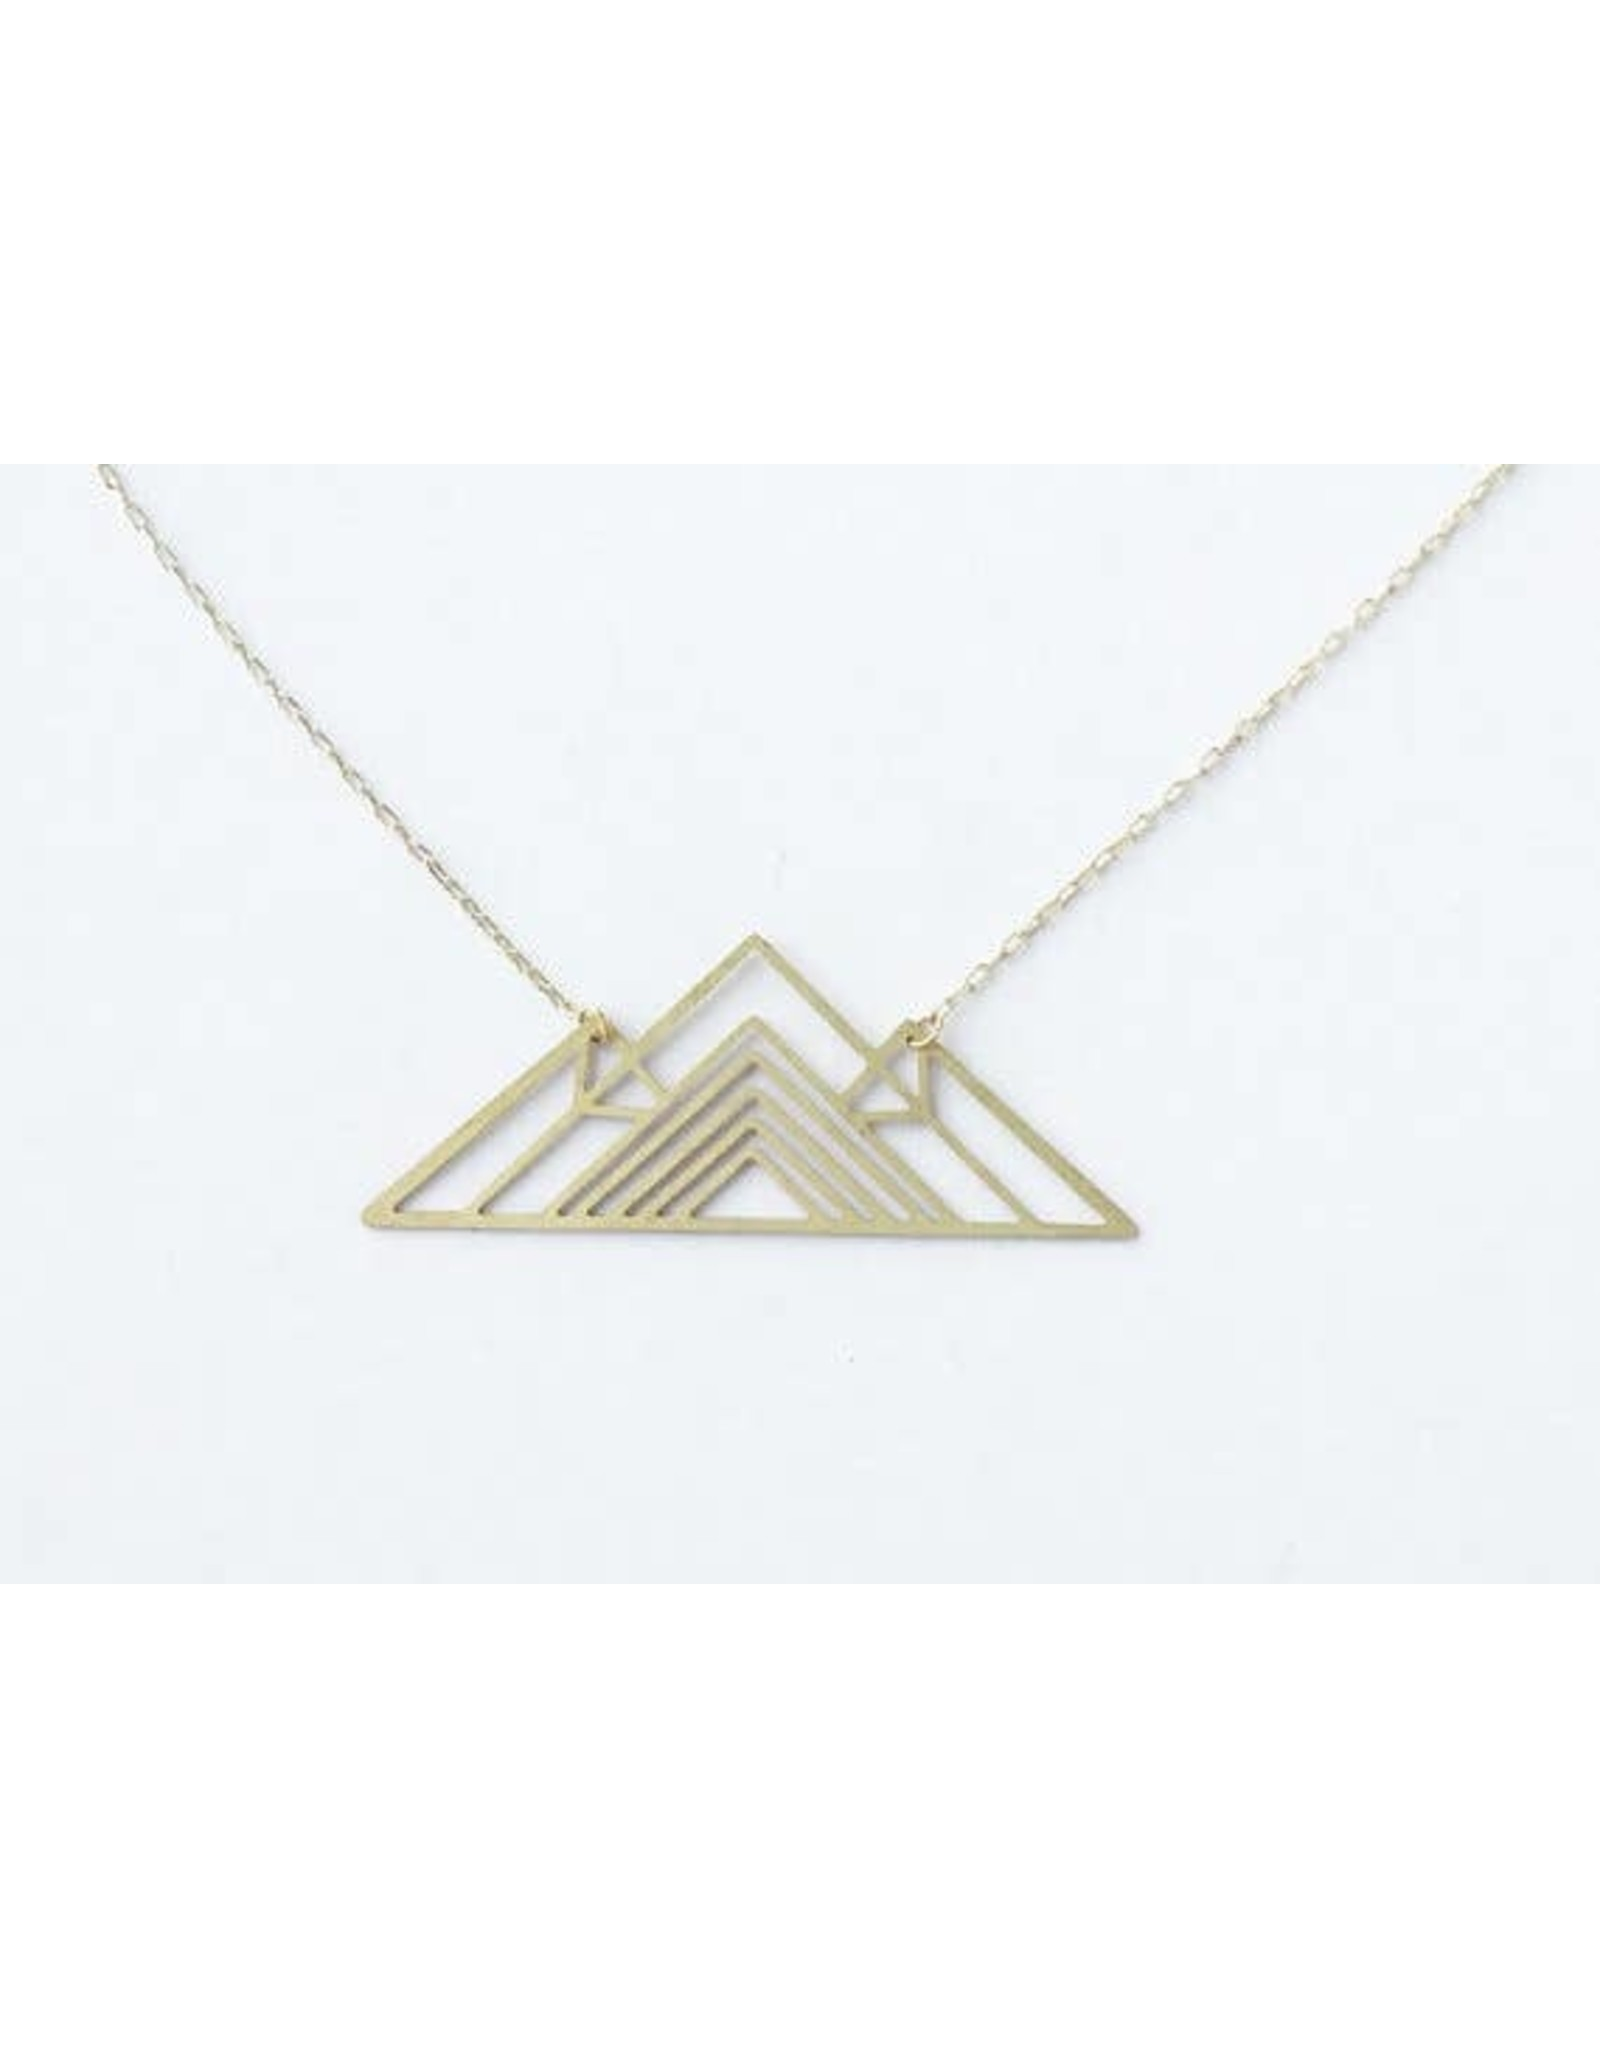 TLJ Geometric Mountain Necklace: Gold